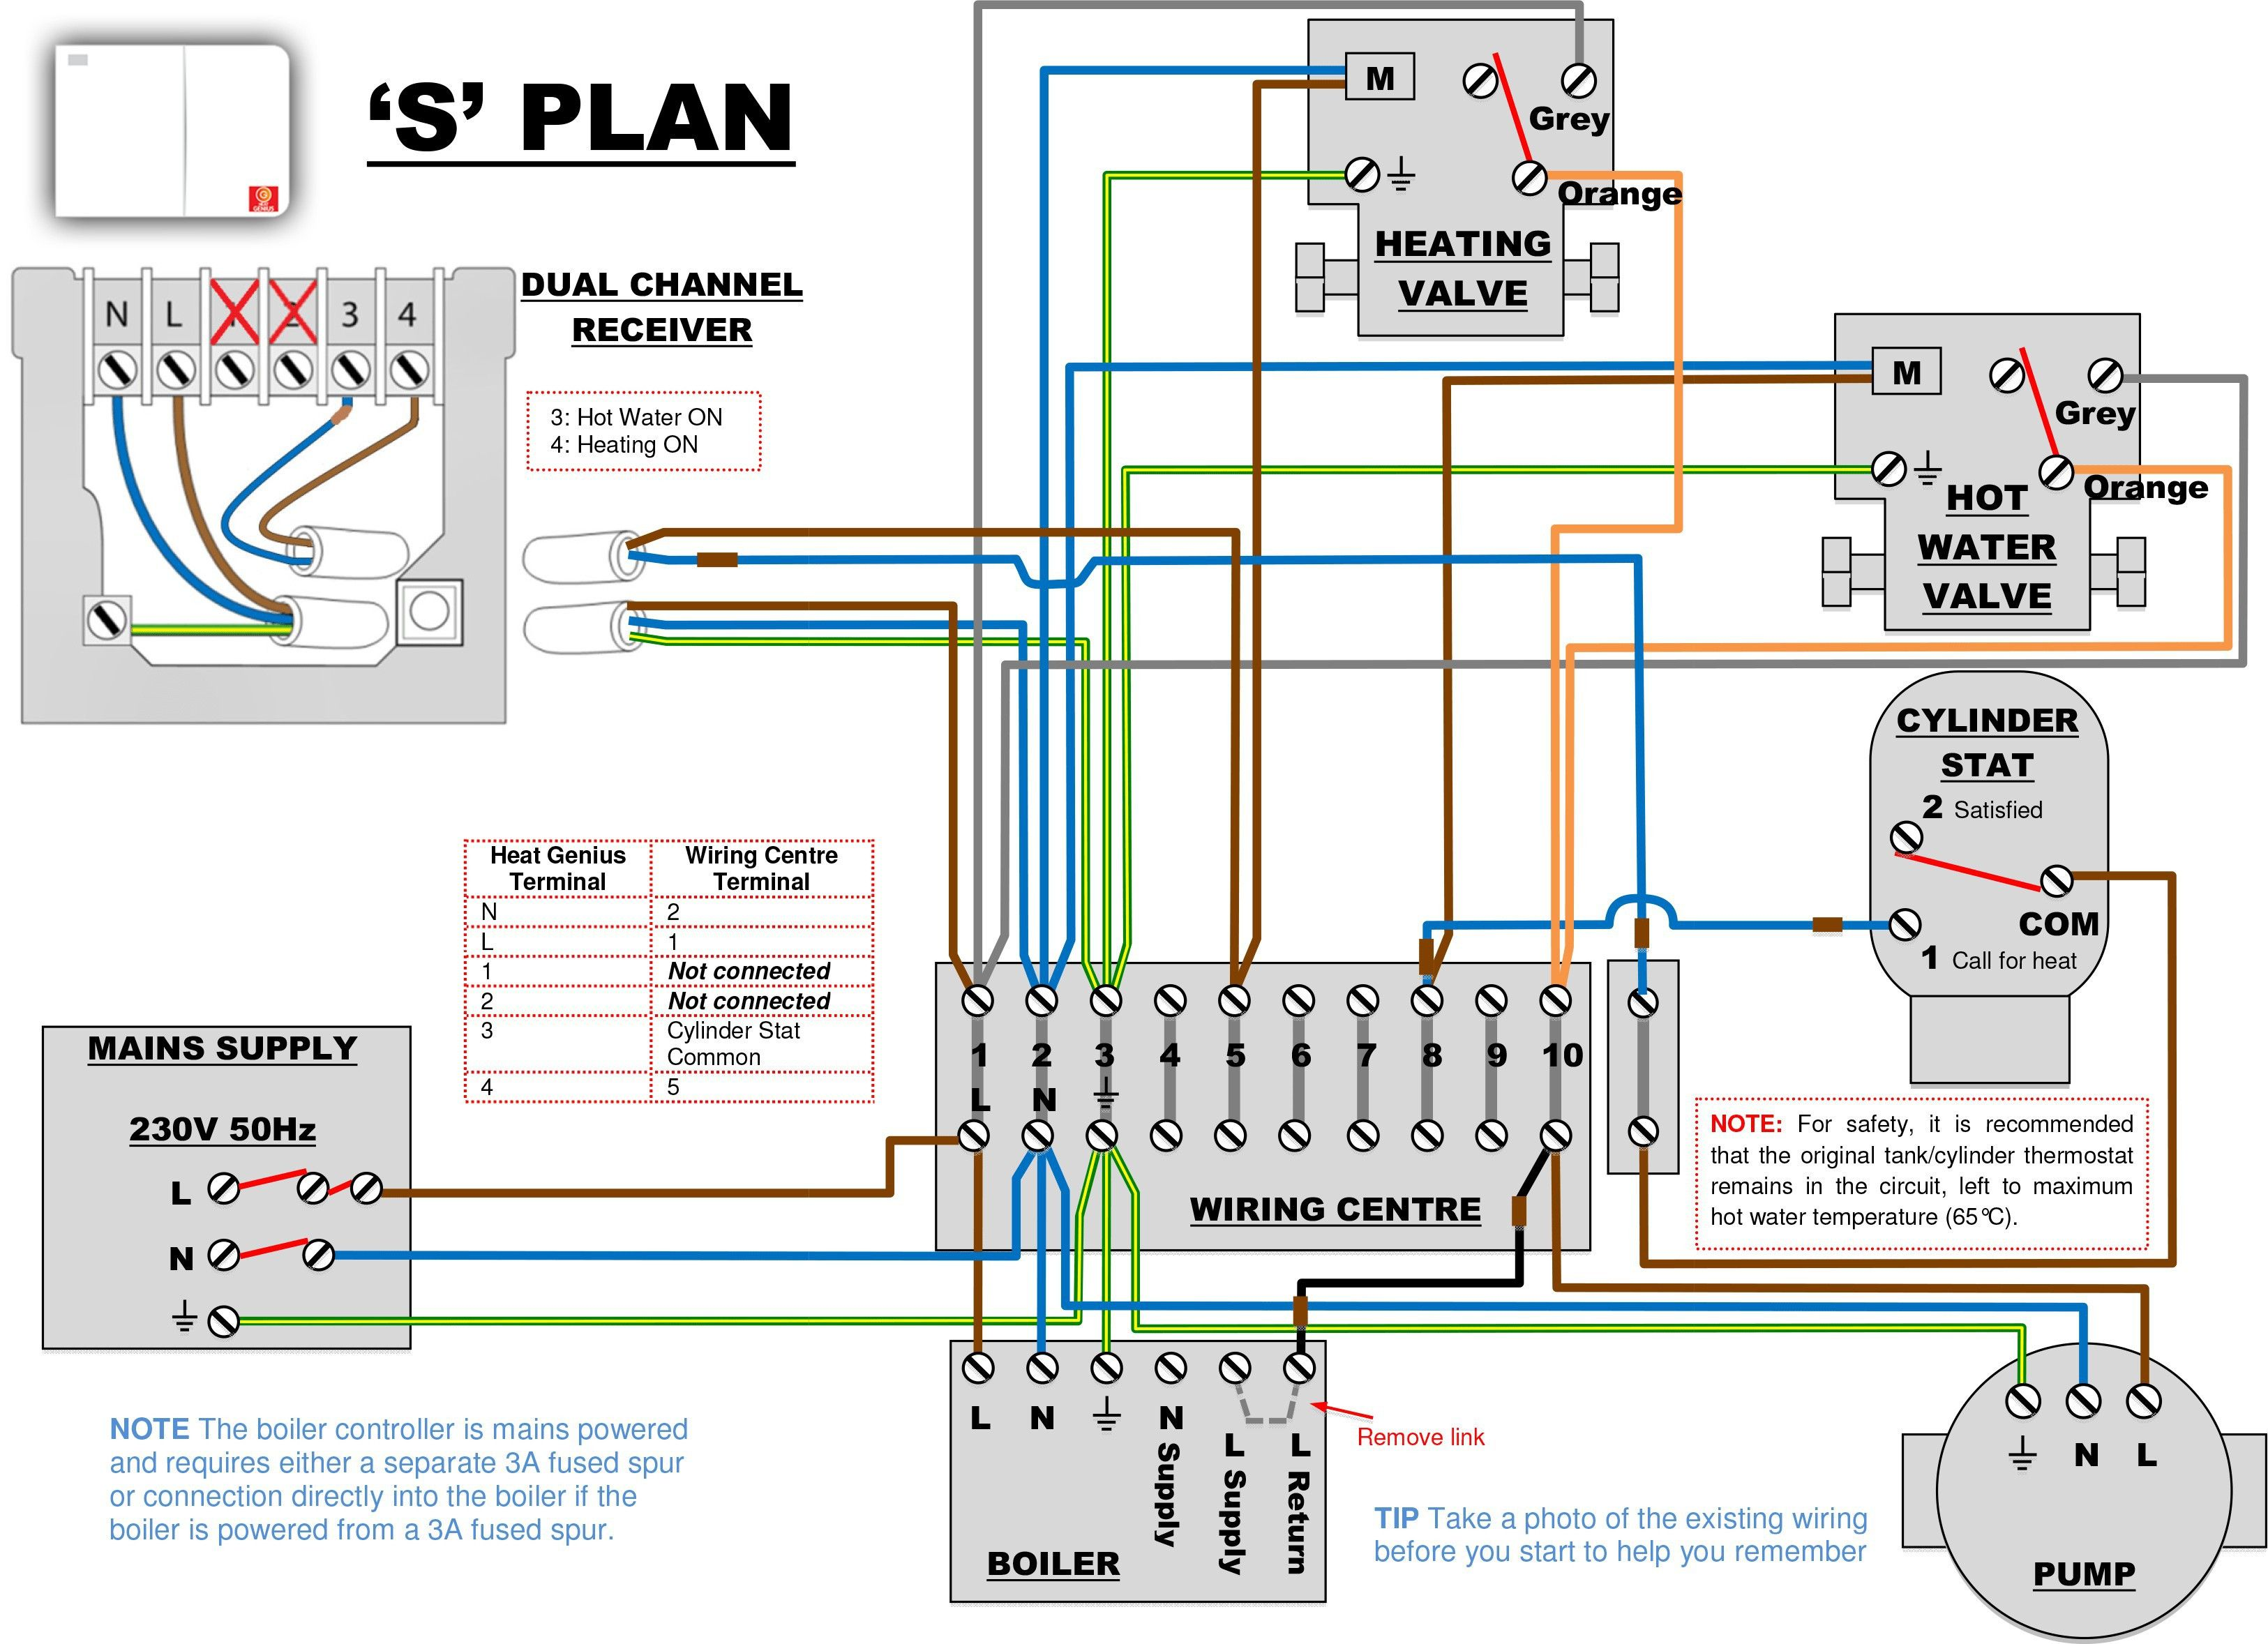 3 Phase Wiring Diagram For House | wiring diagram | Diagram ... on